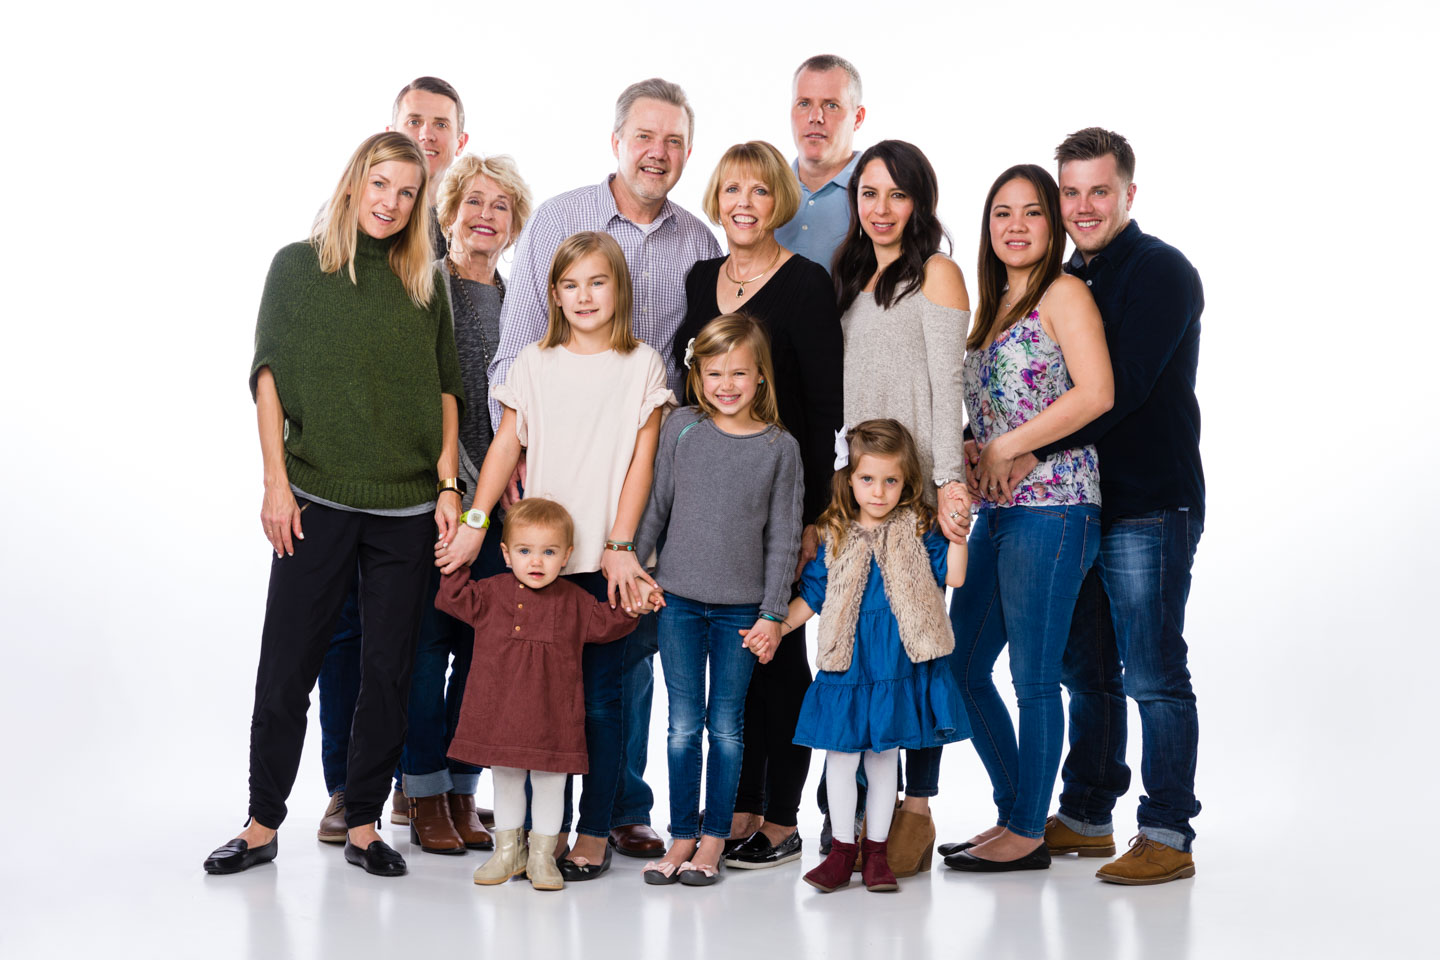 The whole family in front of a white background